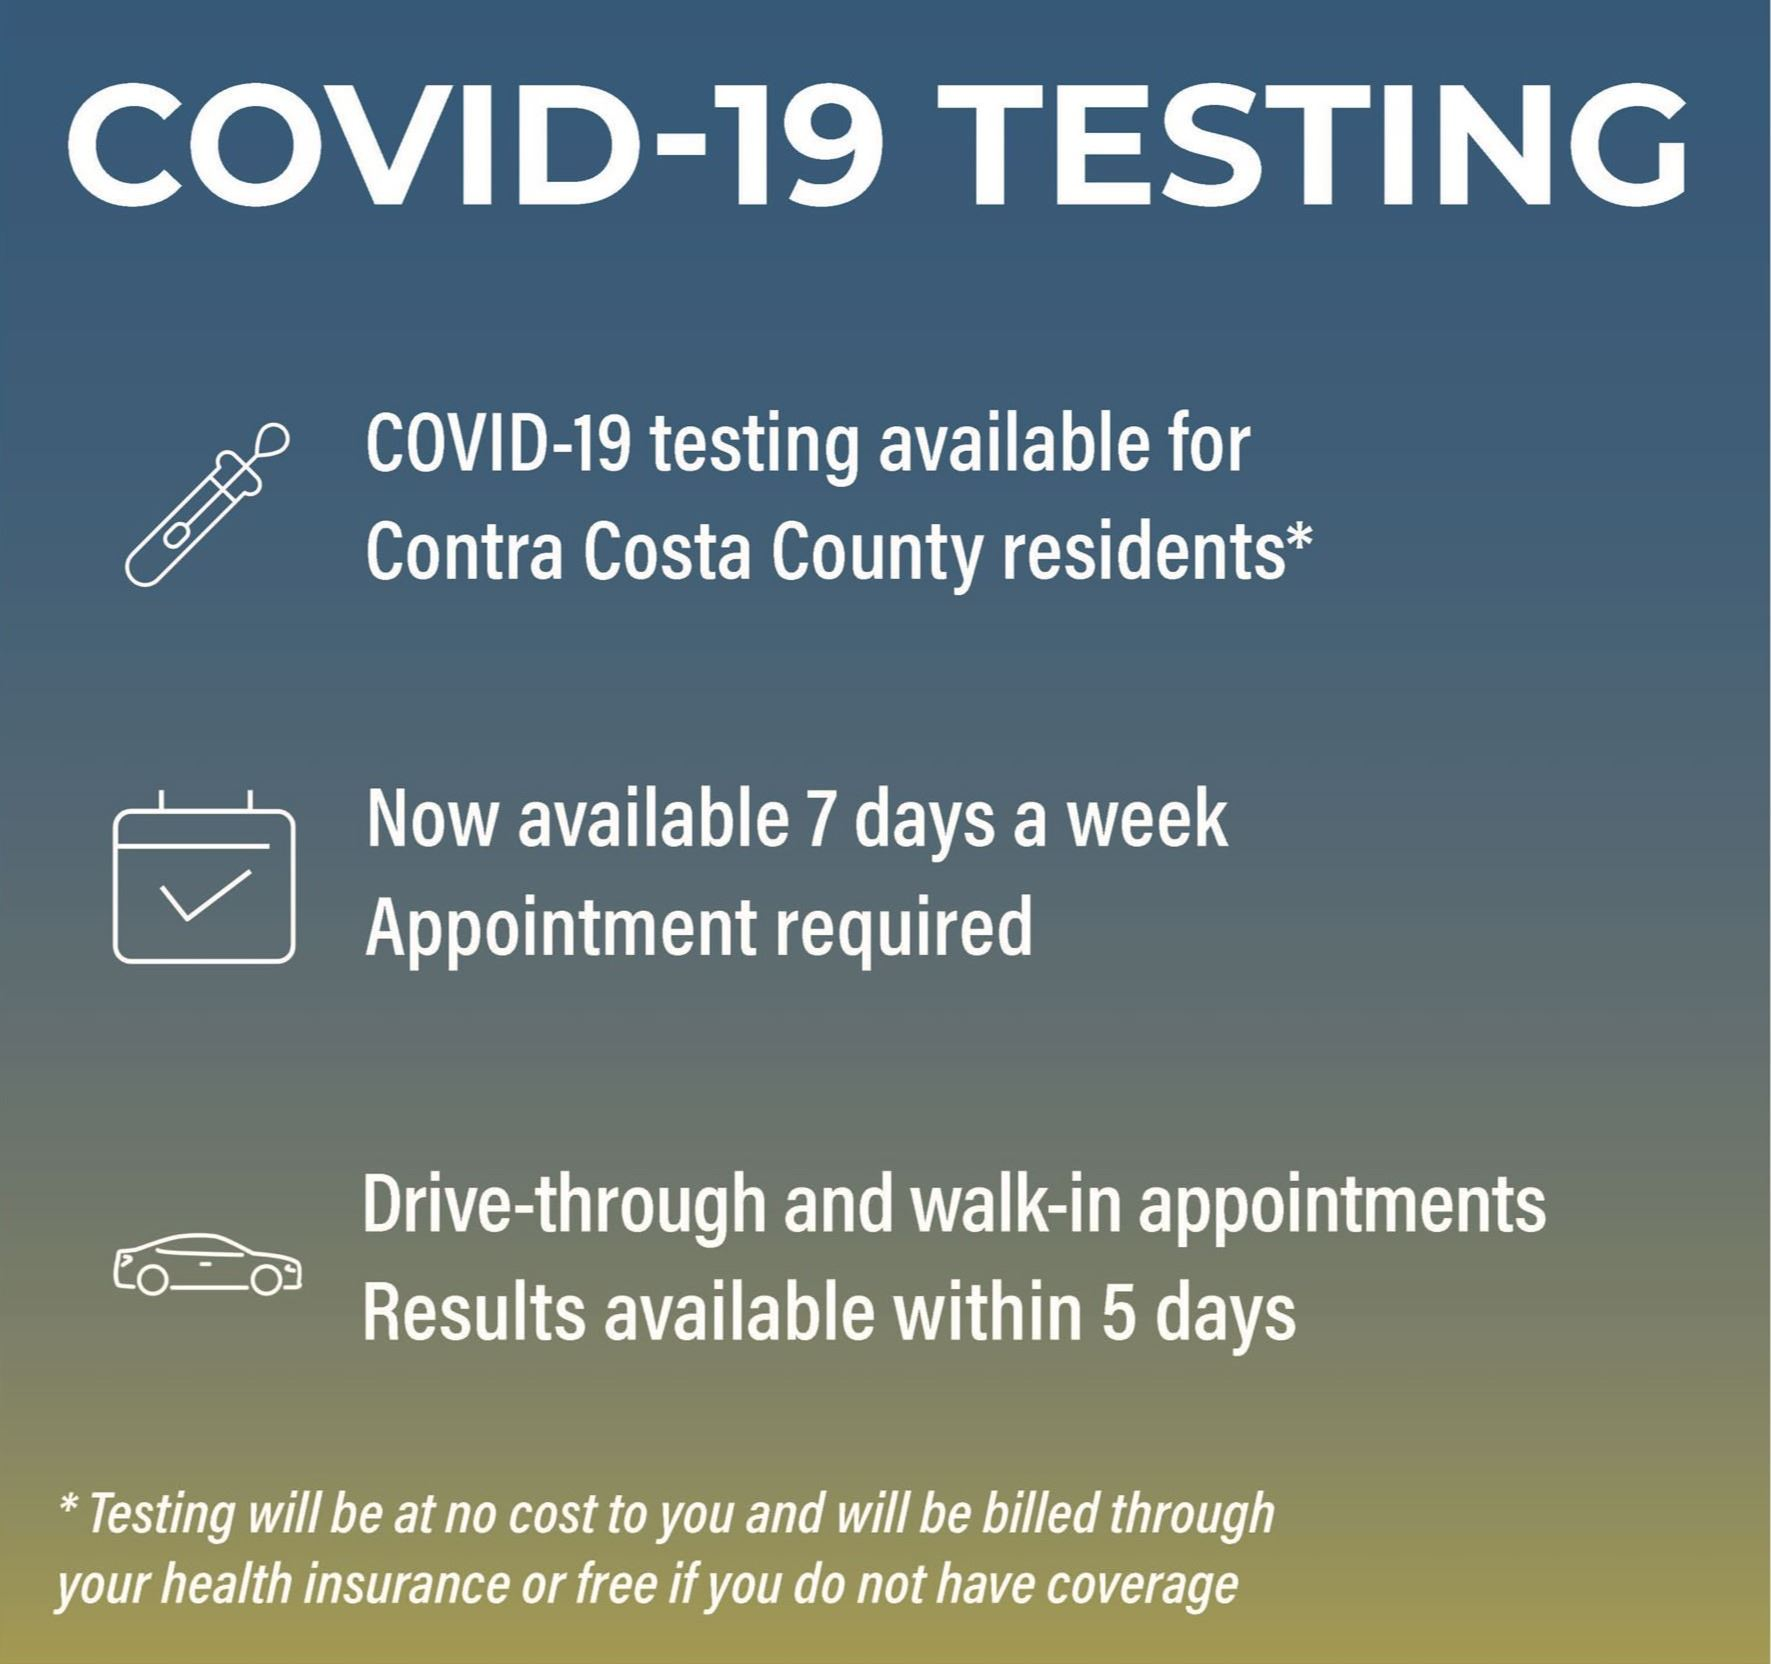 Contra Costa County COVID-19 Testing Informational Image